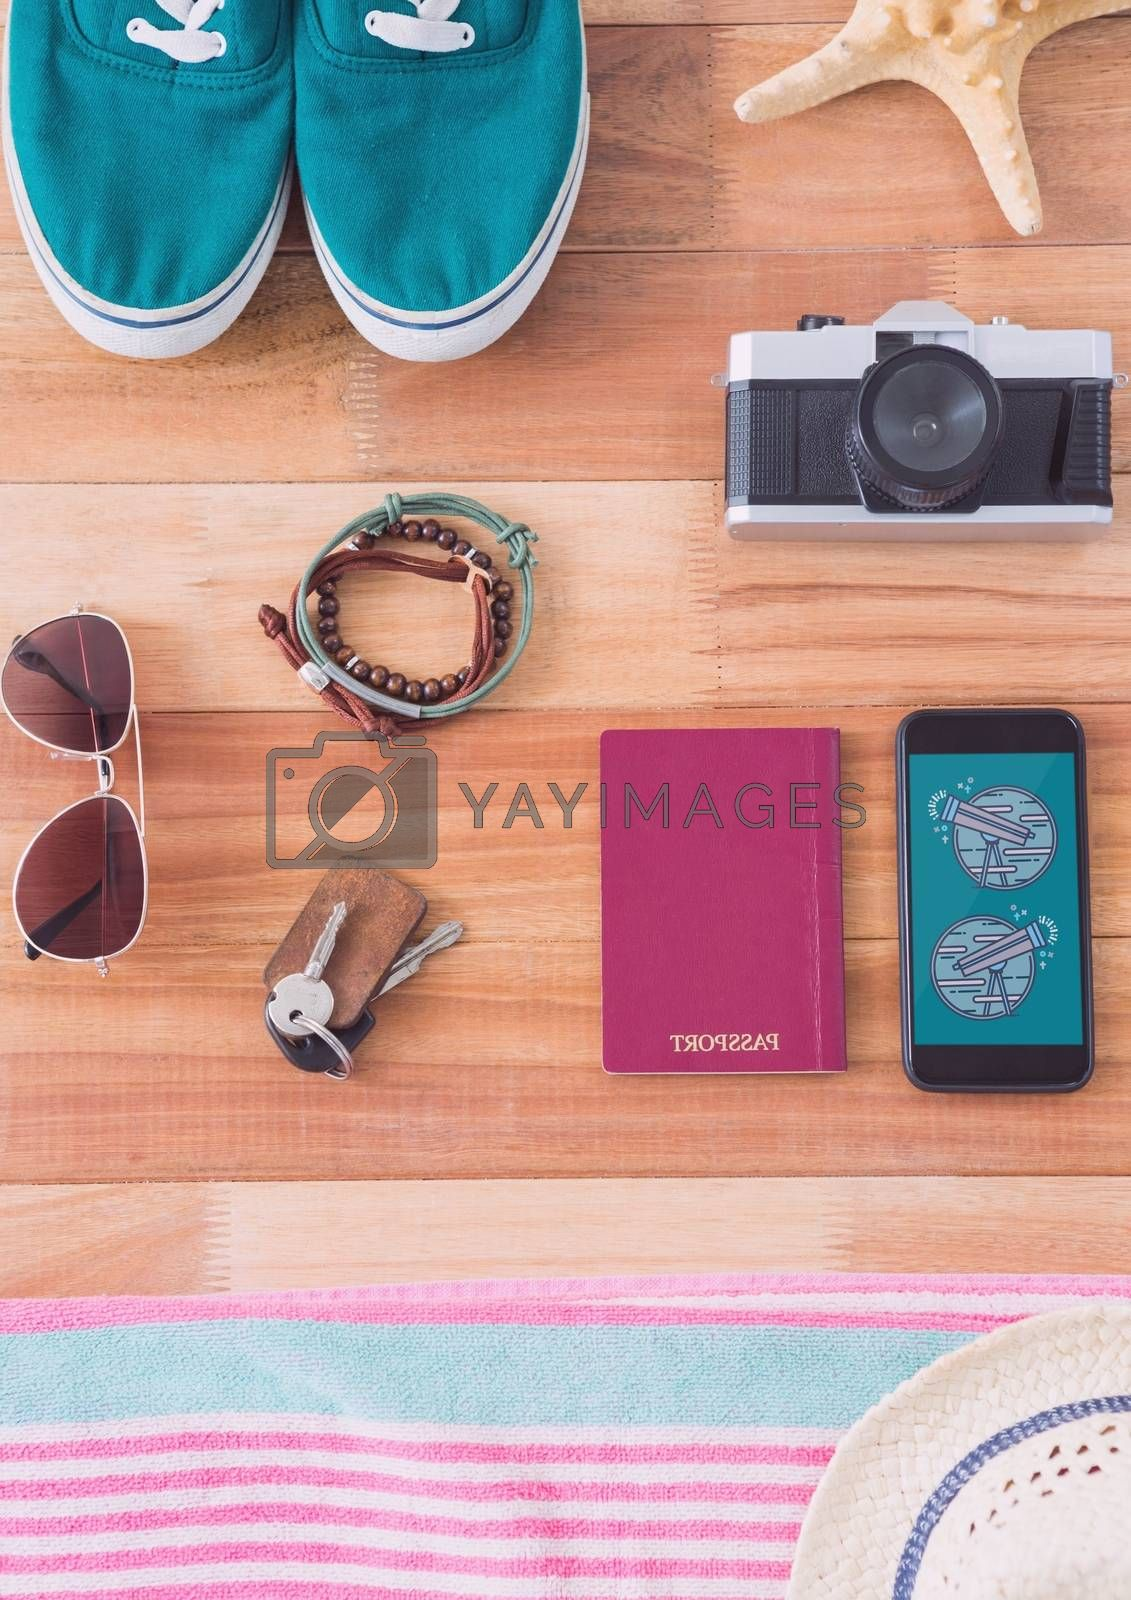 Phone with travel icons on the screen by Wavebreakmedia